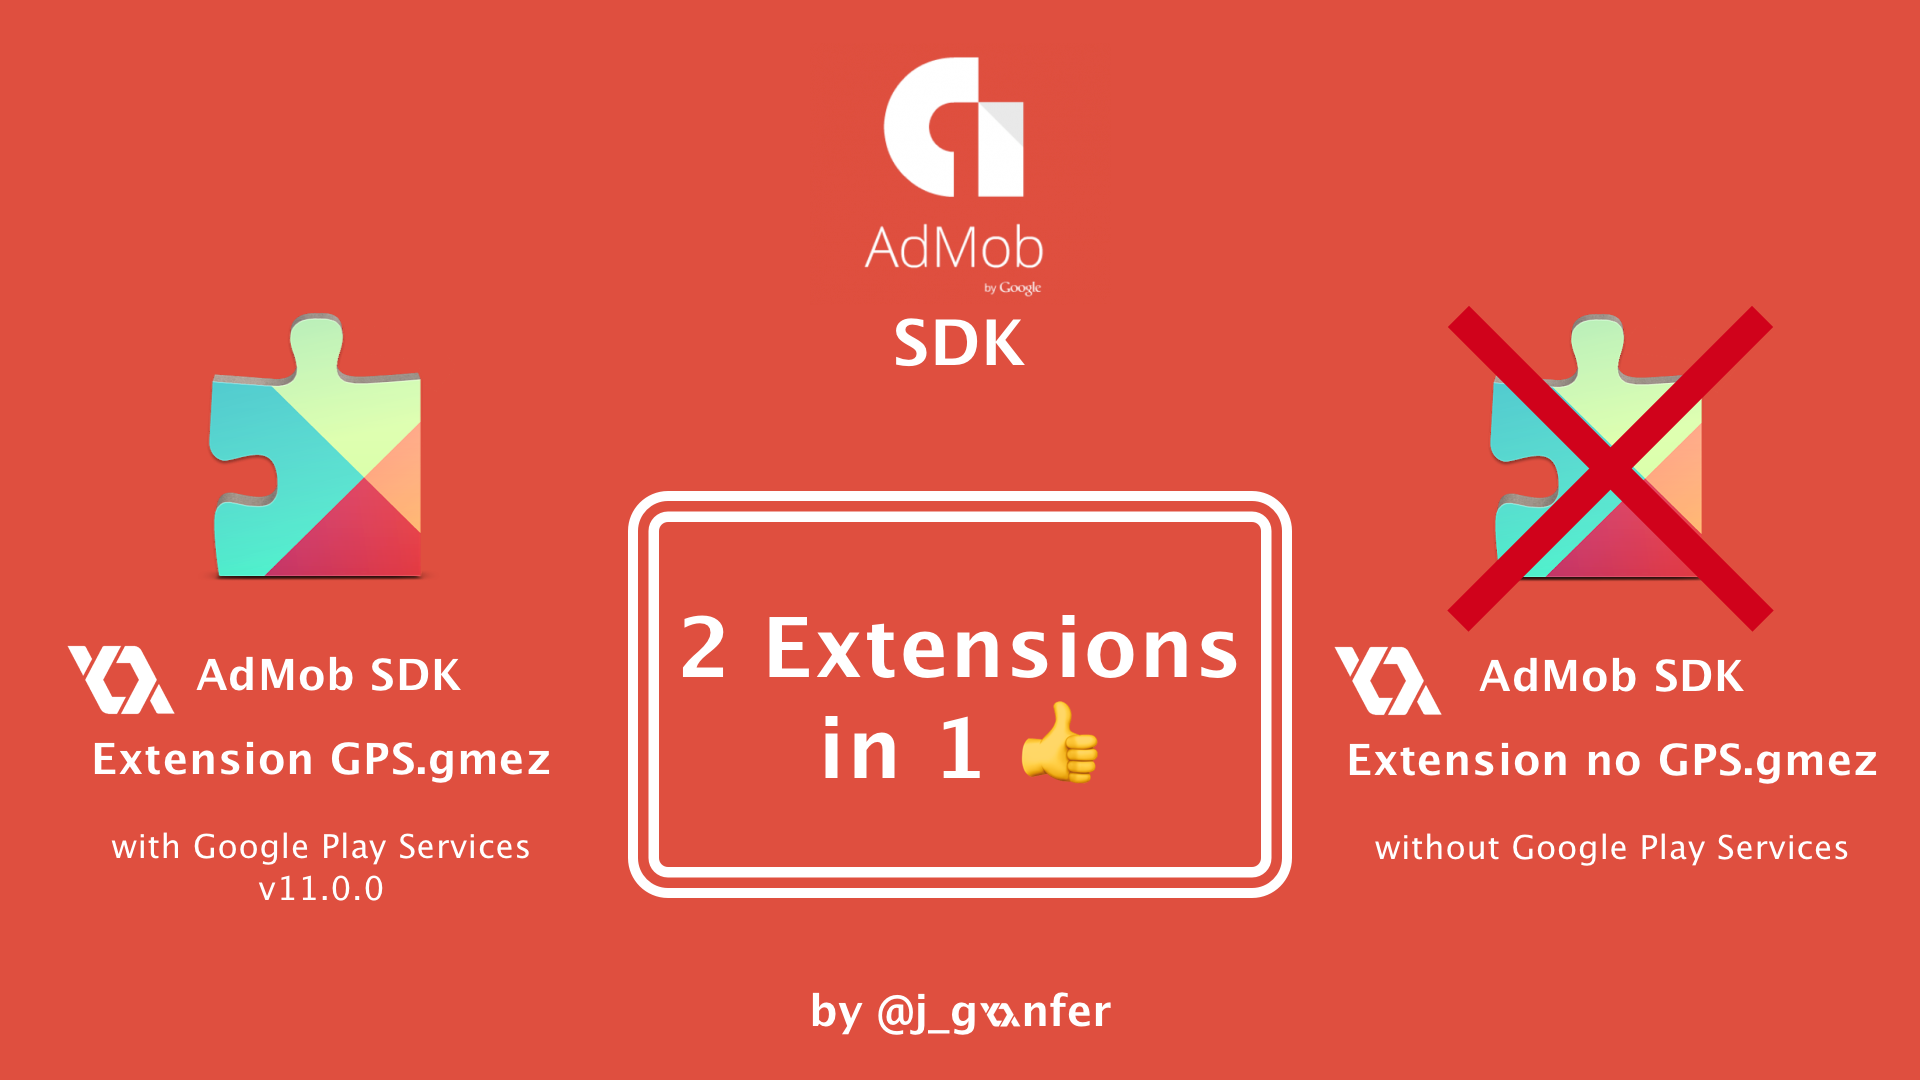 Firebase AdMob SDK Extension 2 Extension in 1